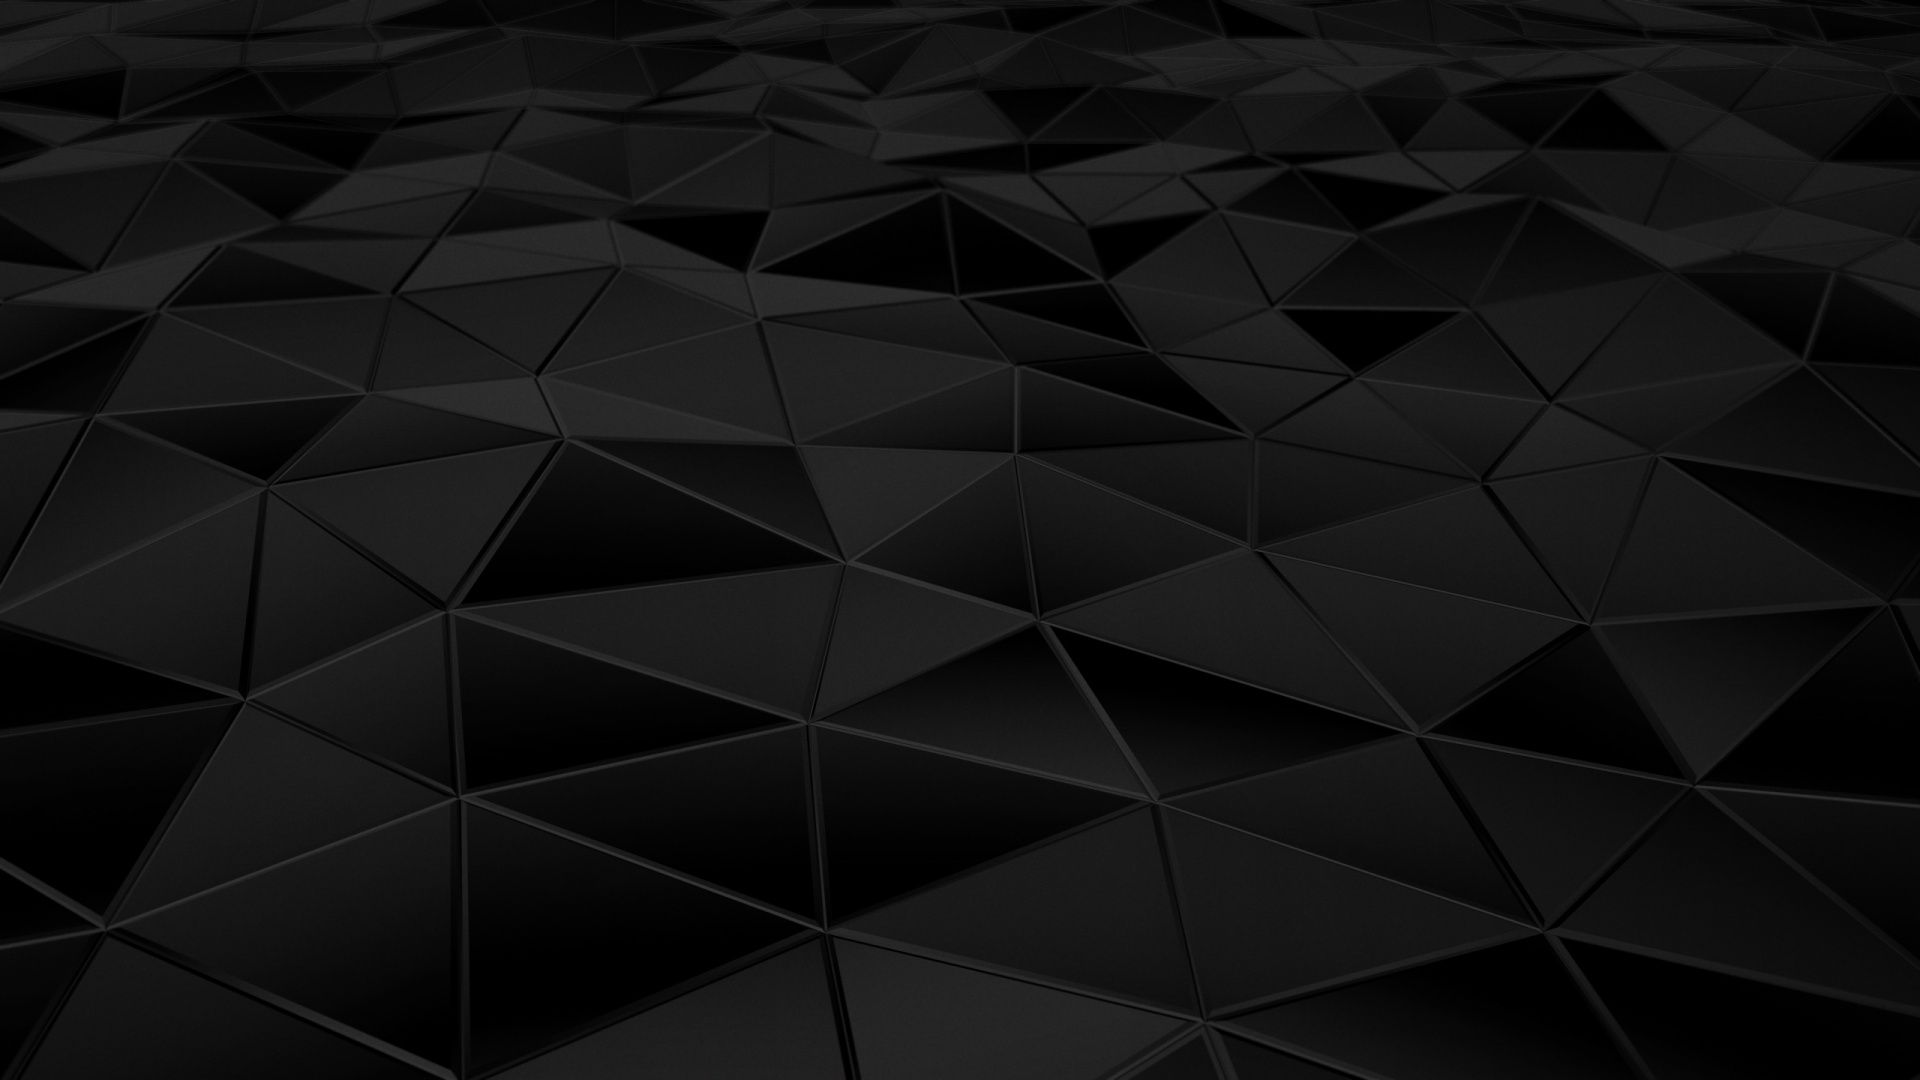 Black Abstraction 720 To 1280, Abstract Wallpaper